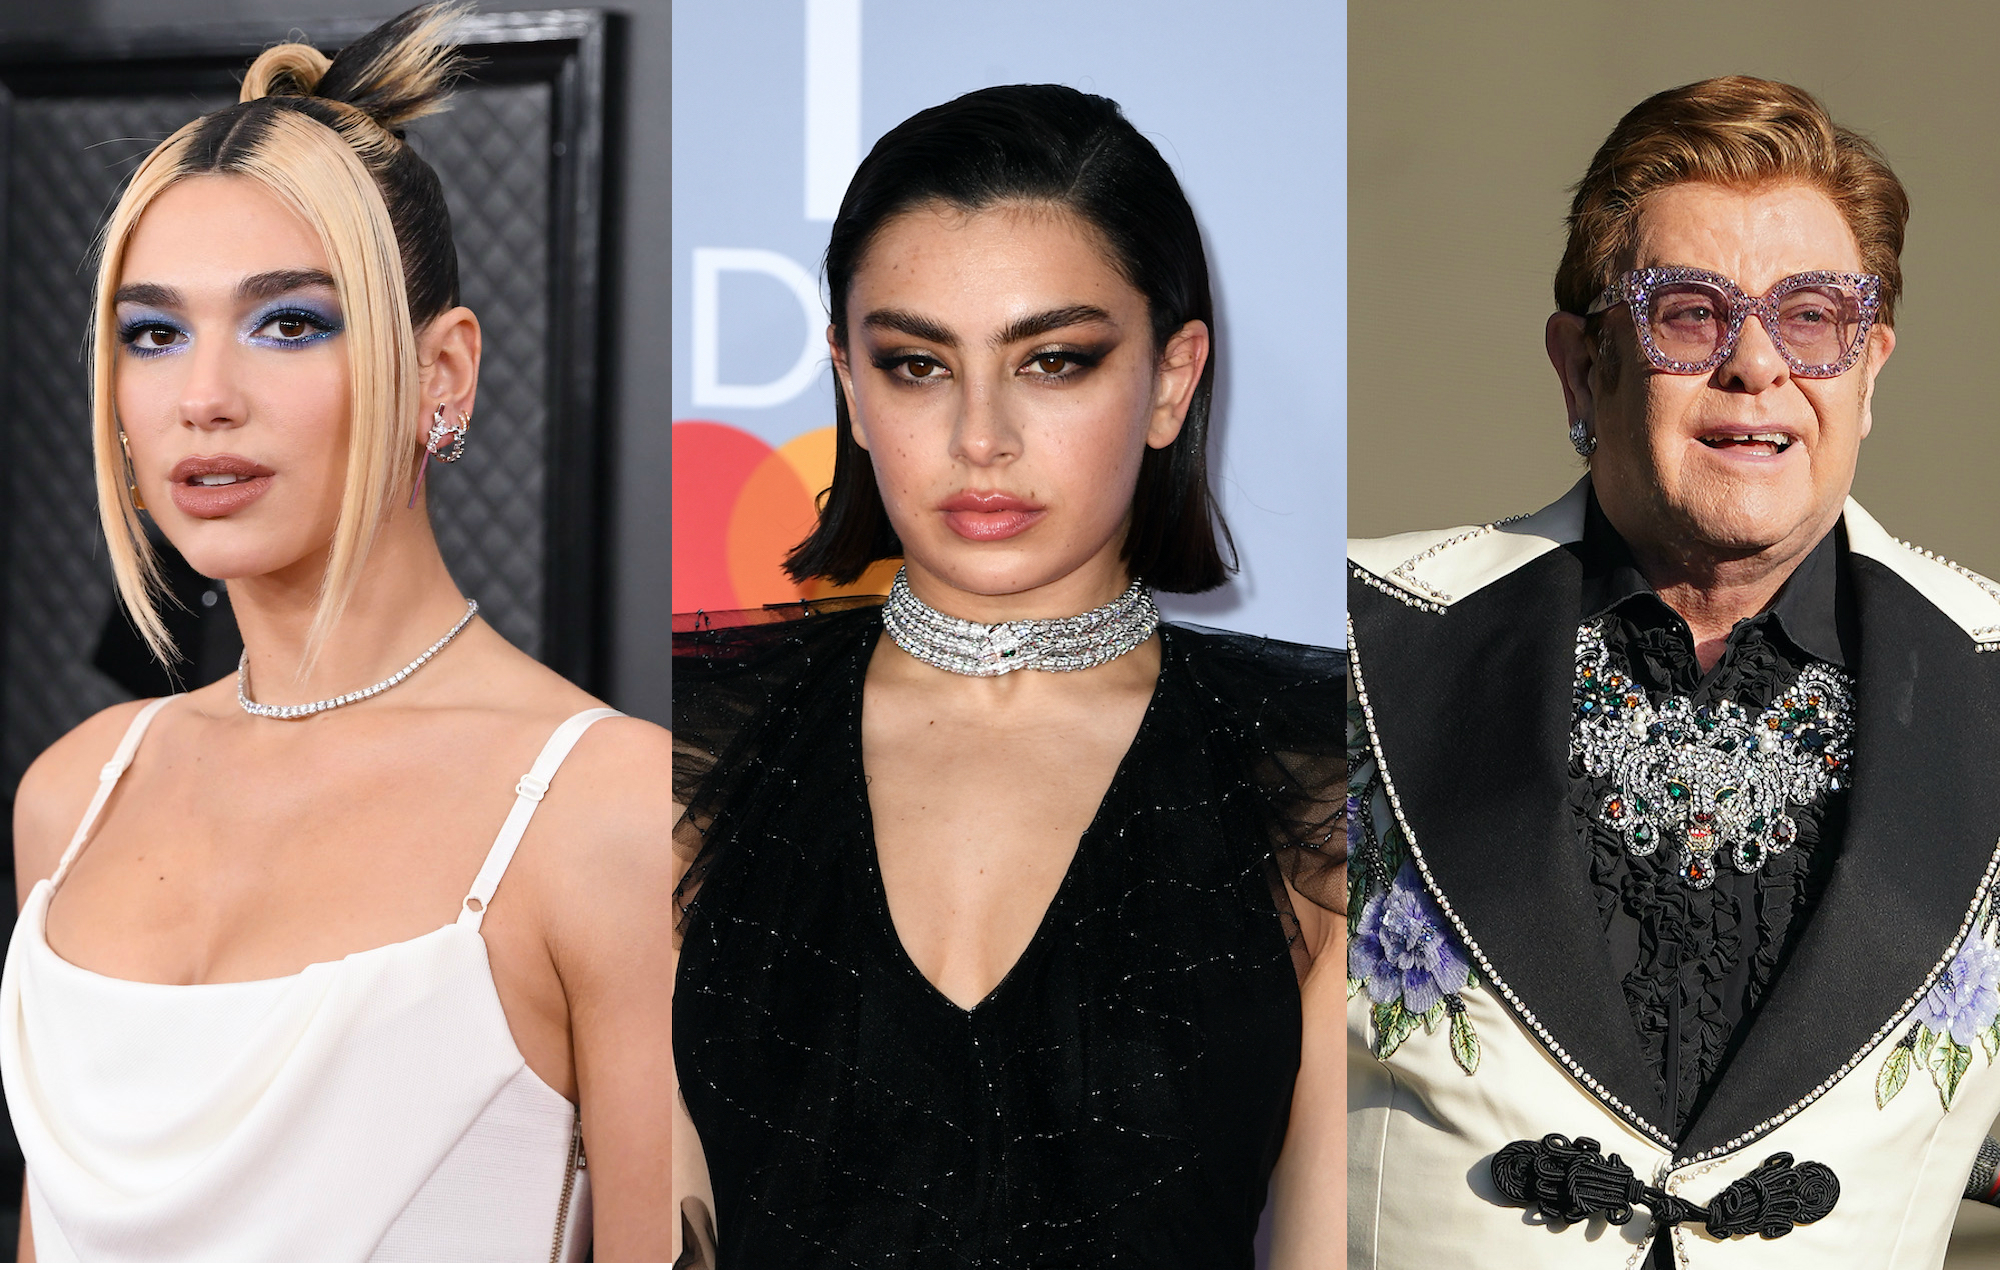 Dua Lipa, Charli XCX, Elton John and more sign open letter calling for conversion therapy ban, Shop Ticket Snatchers